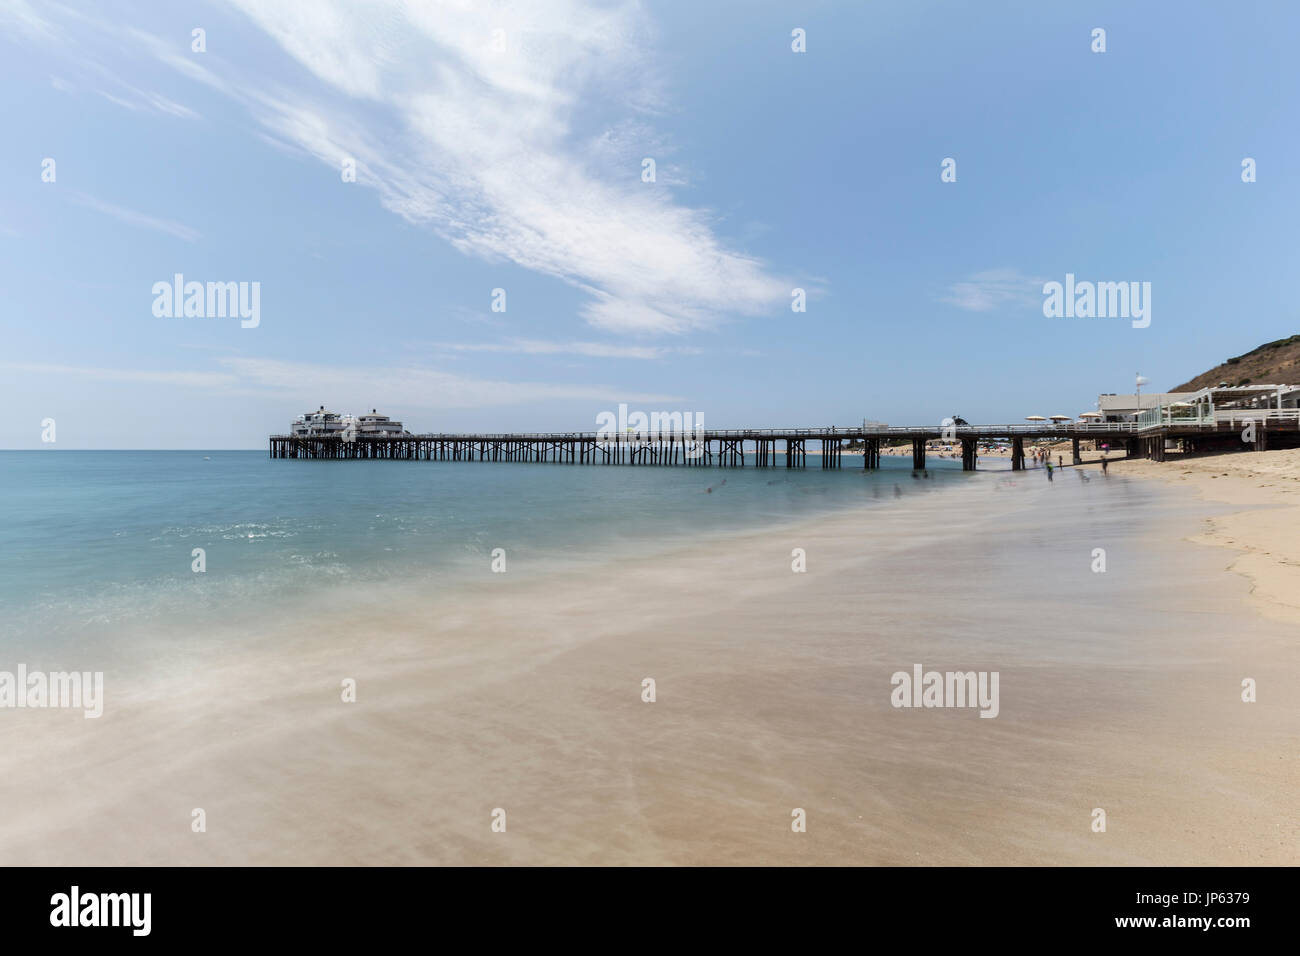 Malibu Pier beach with motion blur water in Los Angeles County, California. - Stock Image